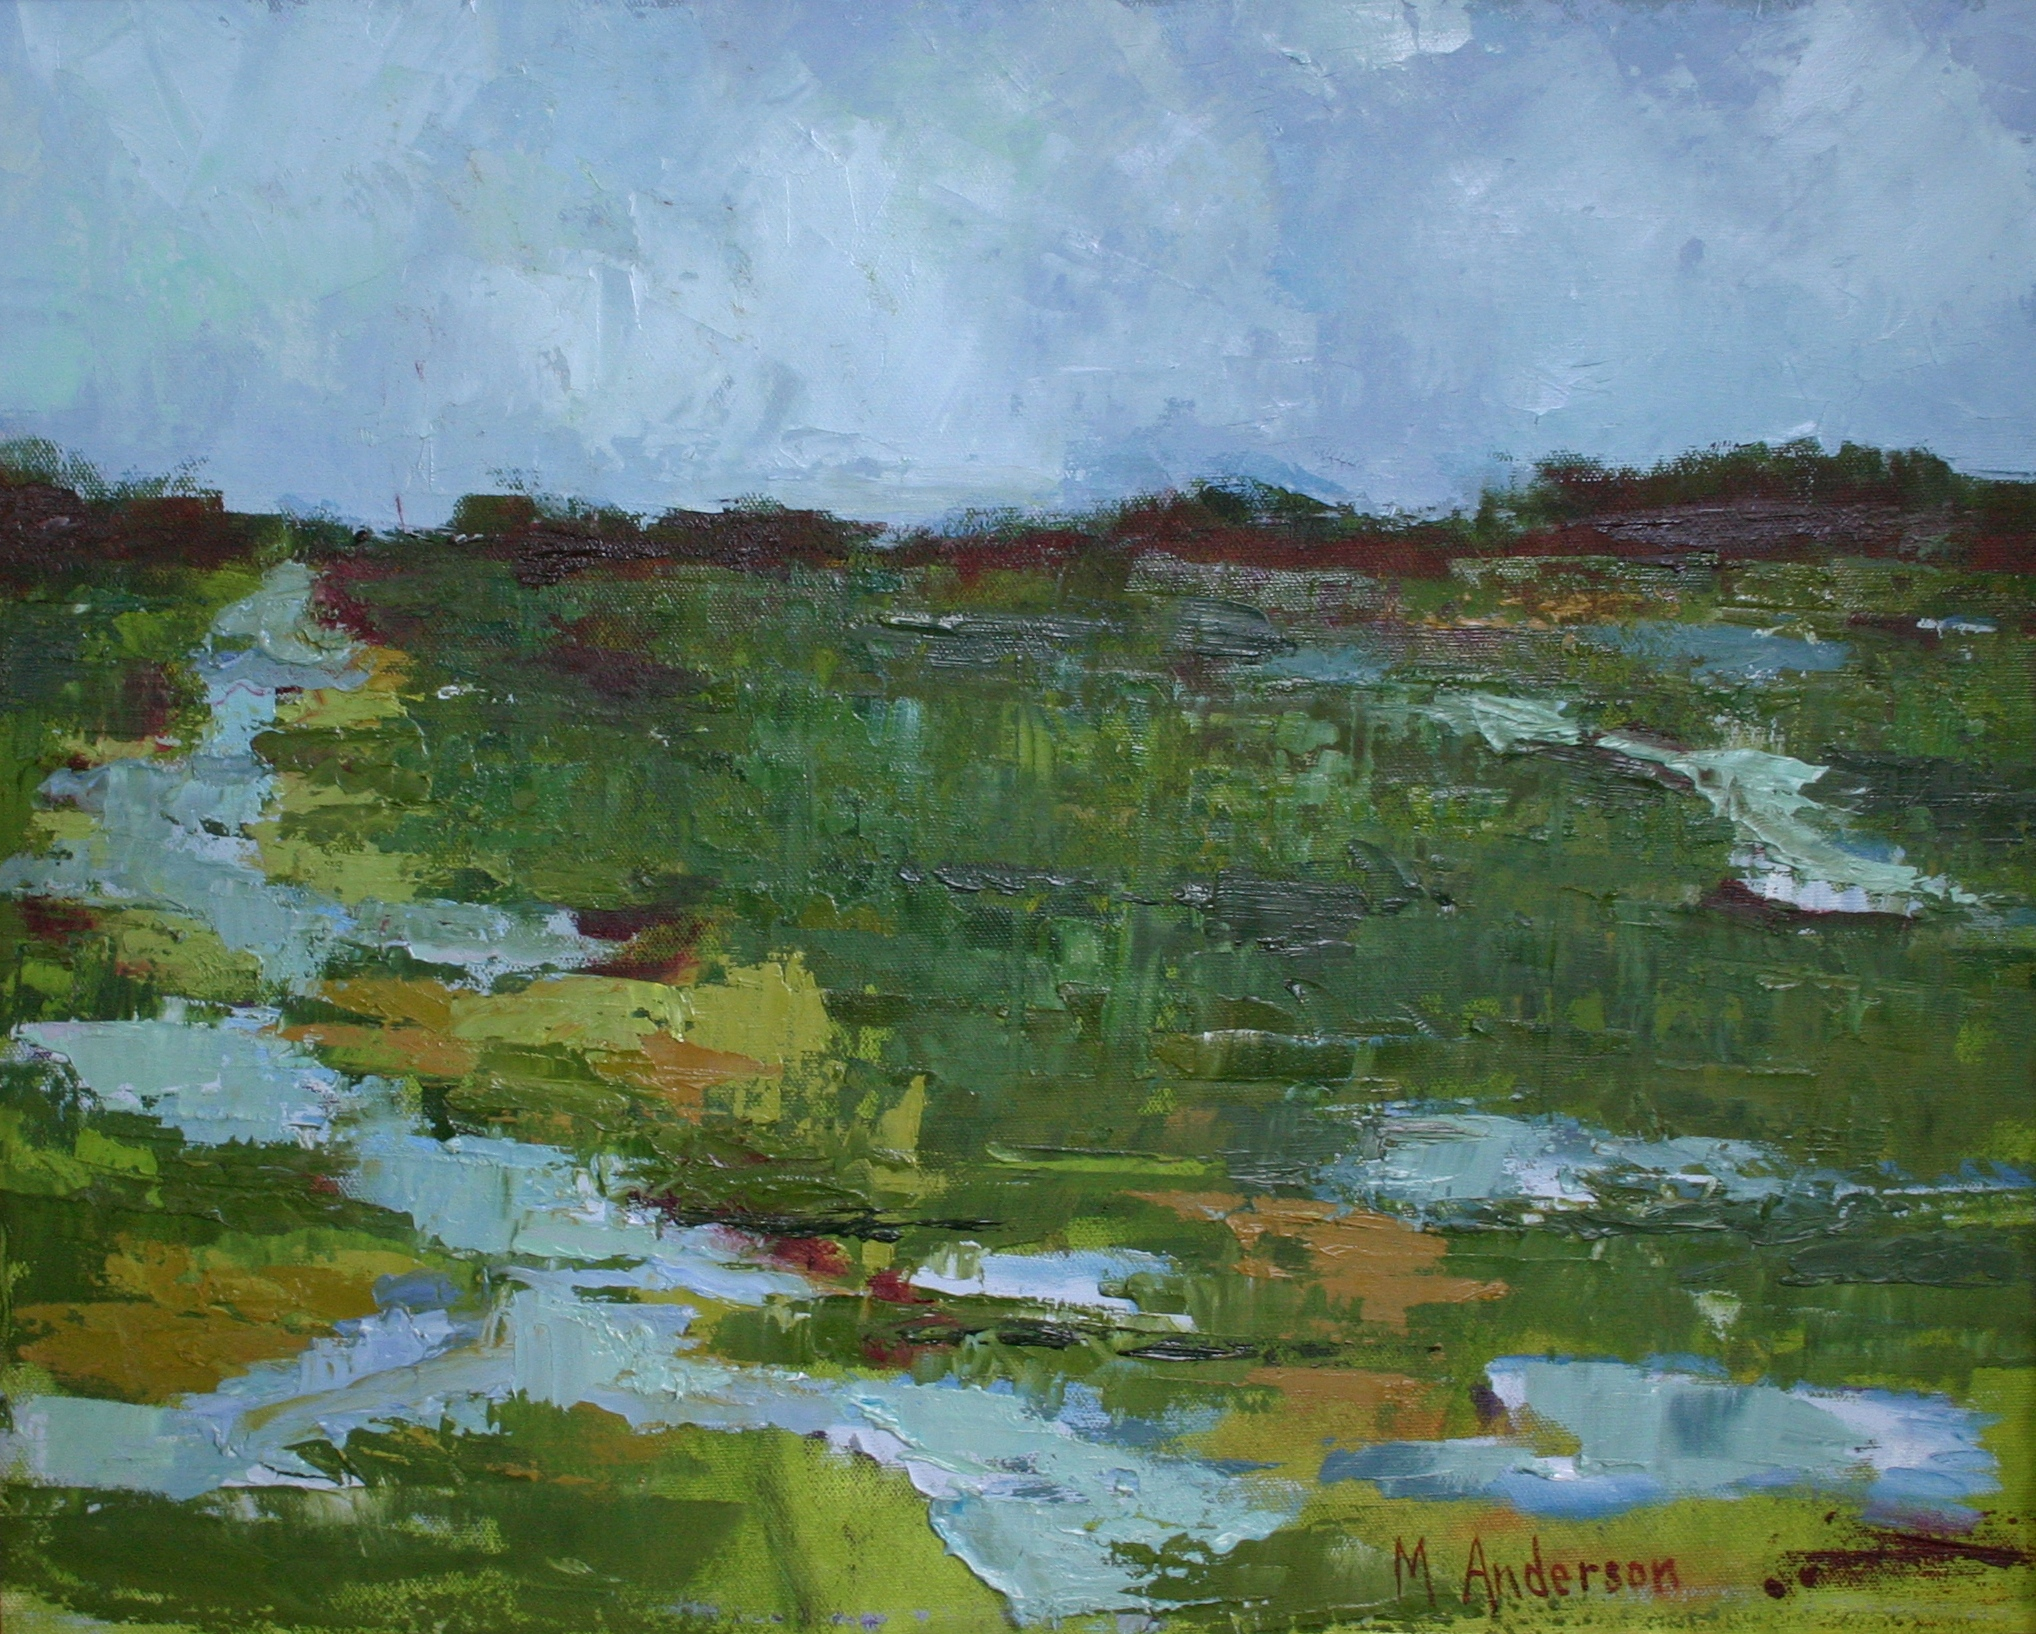 SC Marsh - Pawley's (16x20 Canvas) - Sold